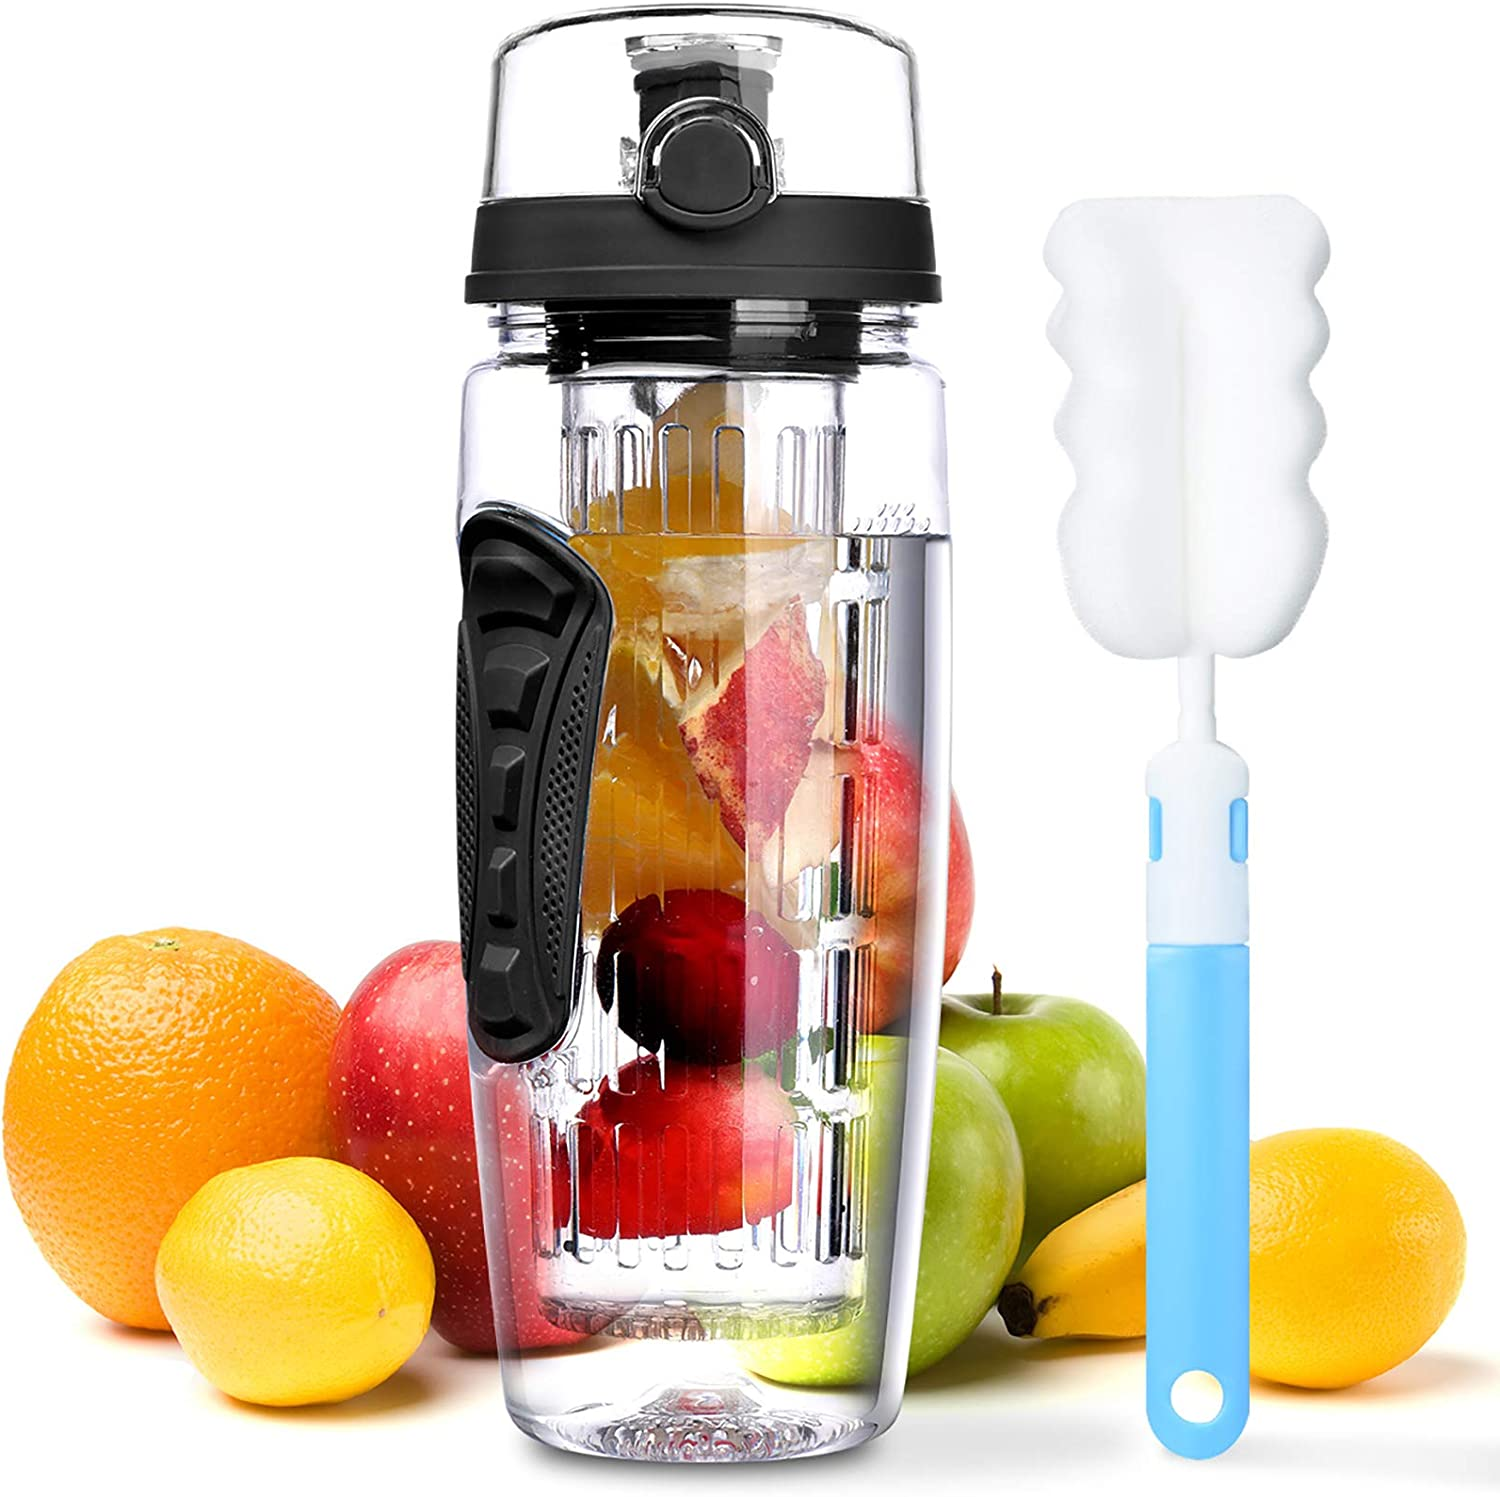 Omorc Fruit Infuser